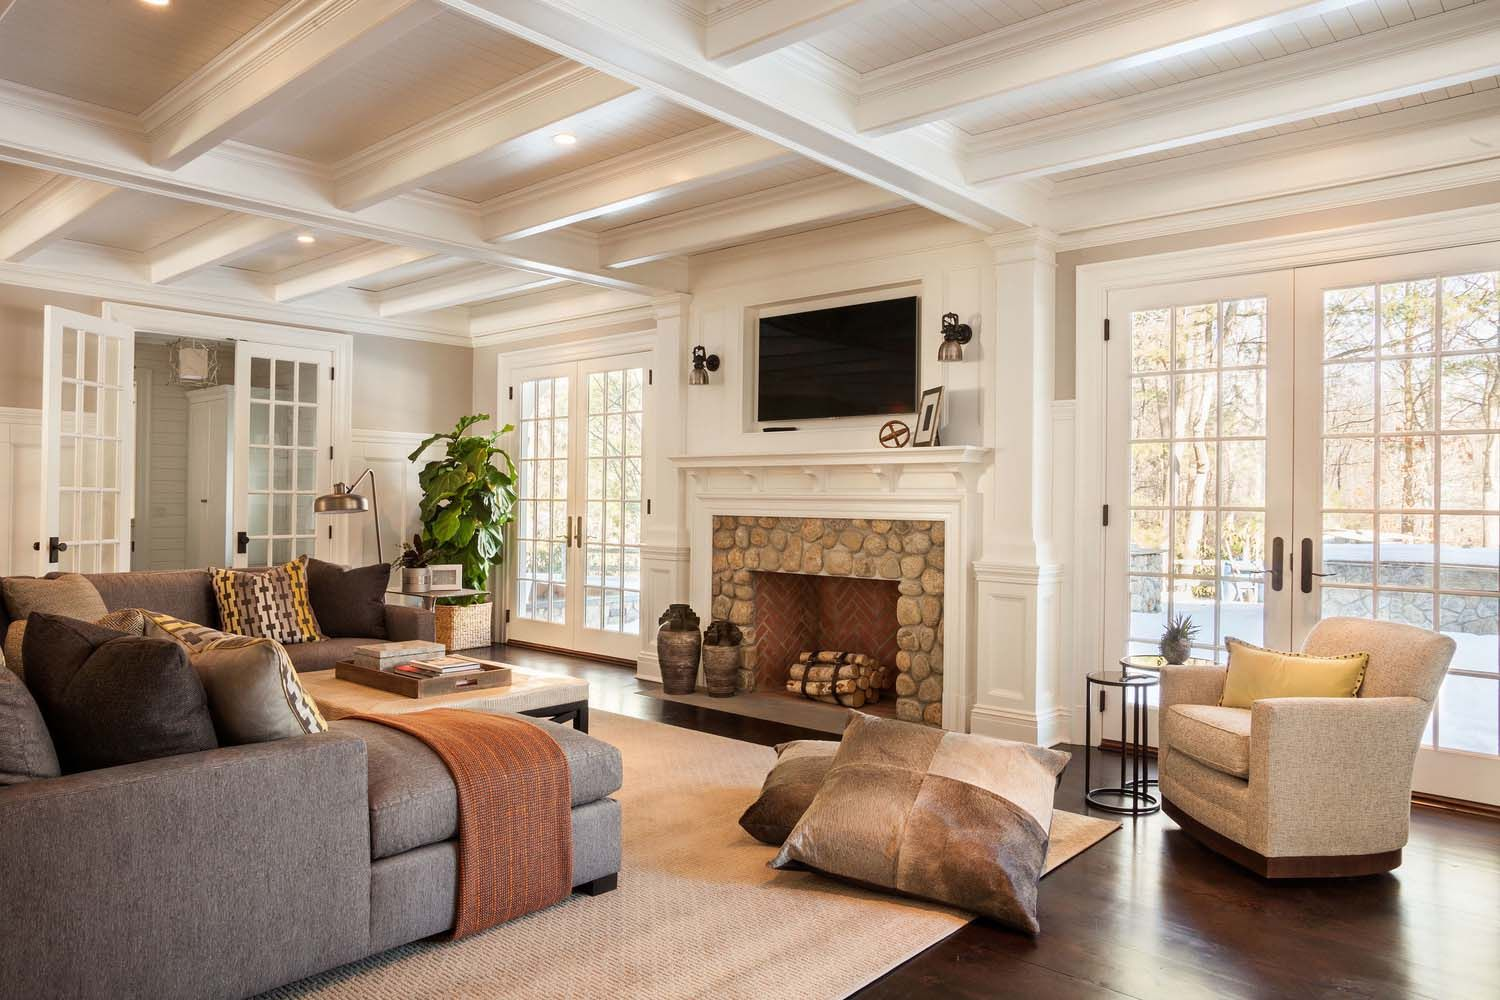 A stylish Colonial home with traditional interiors